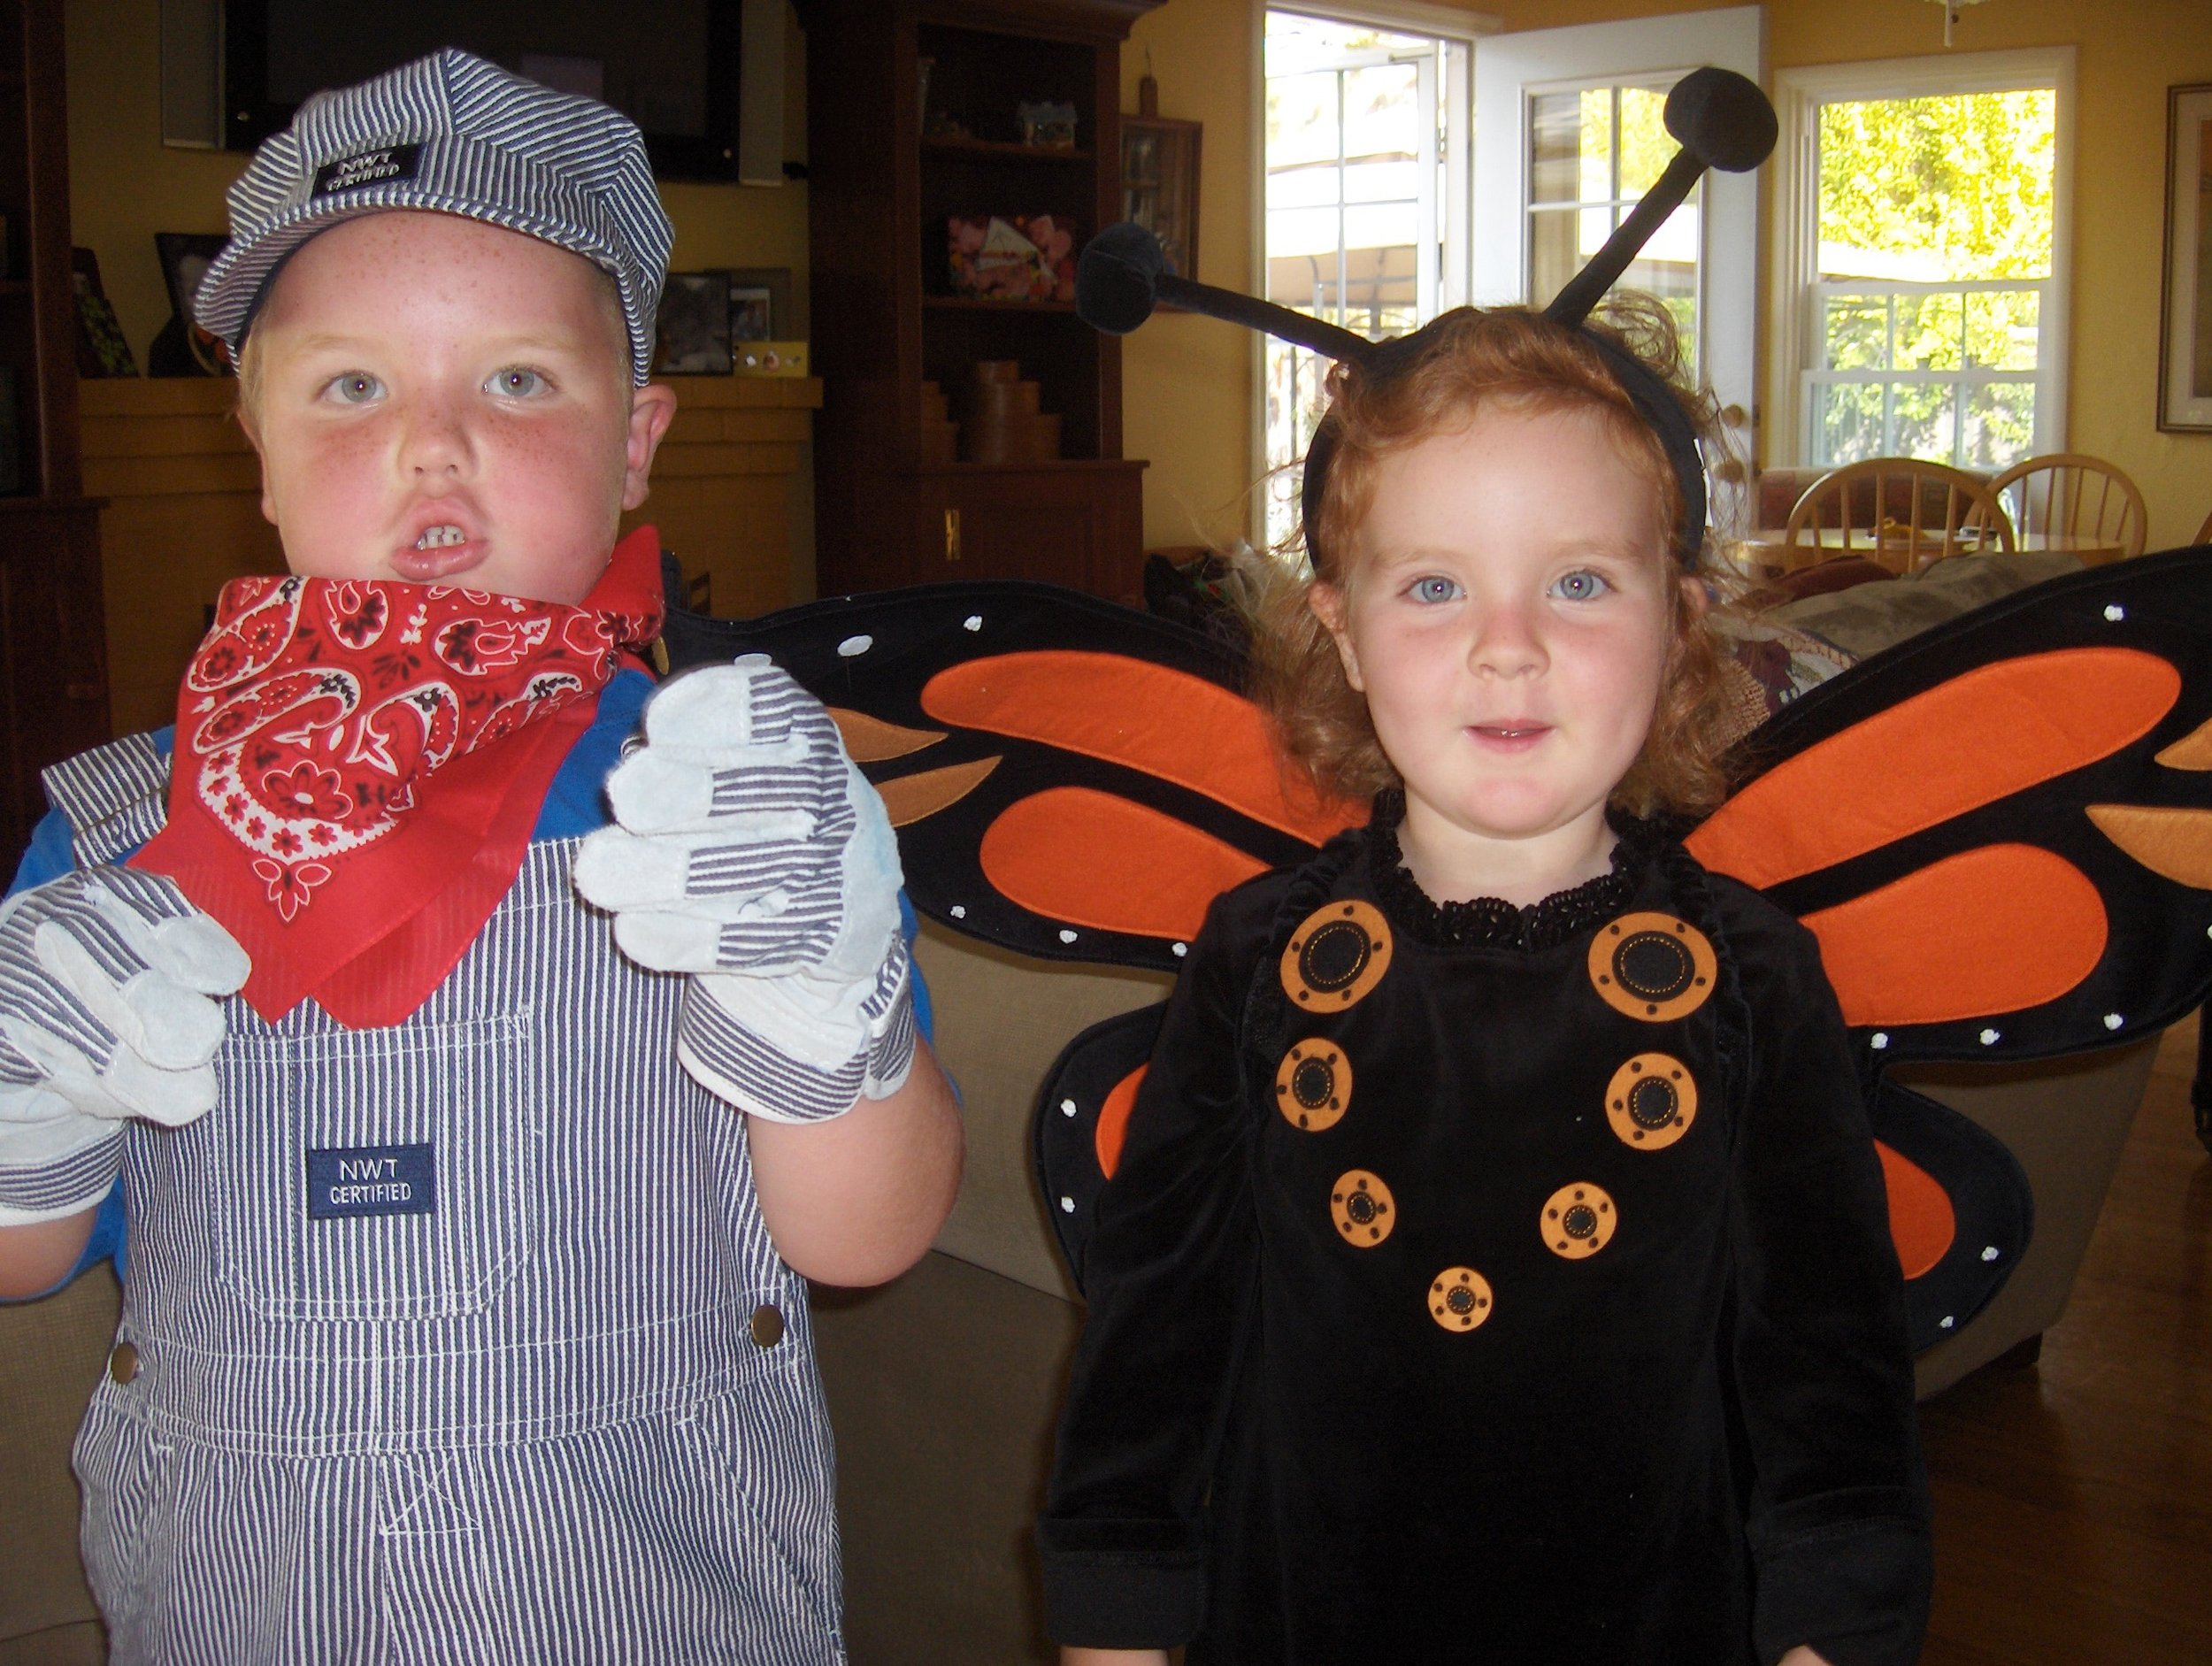 Engineer (possibly saying 'choo choo') and Monarch Butterfly